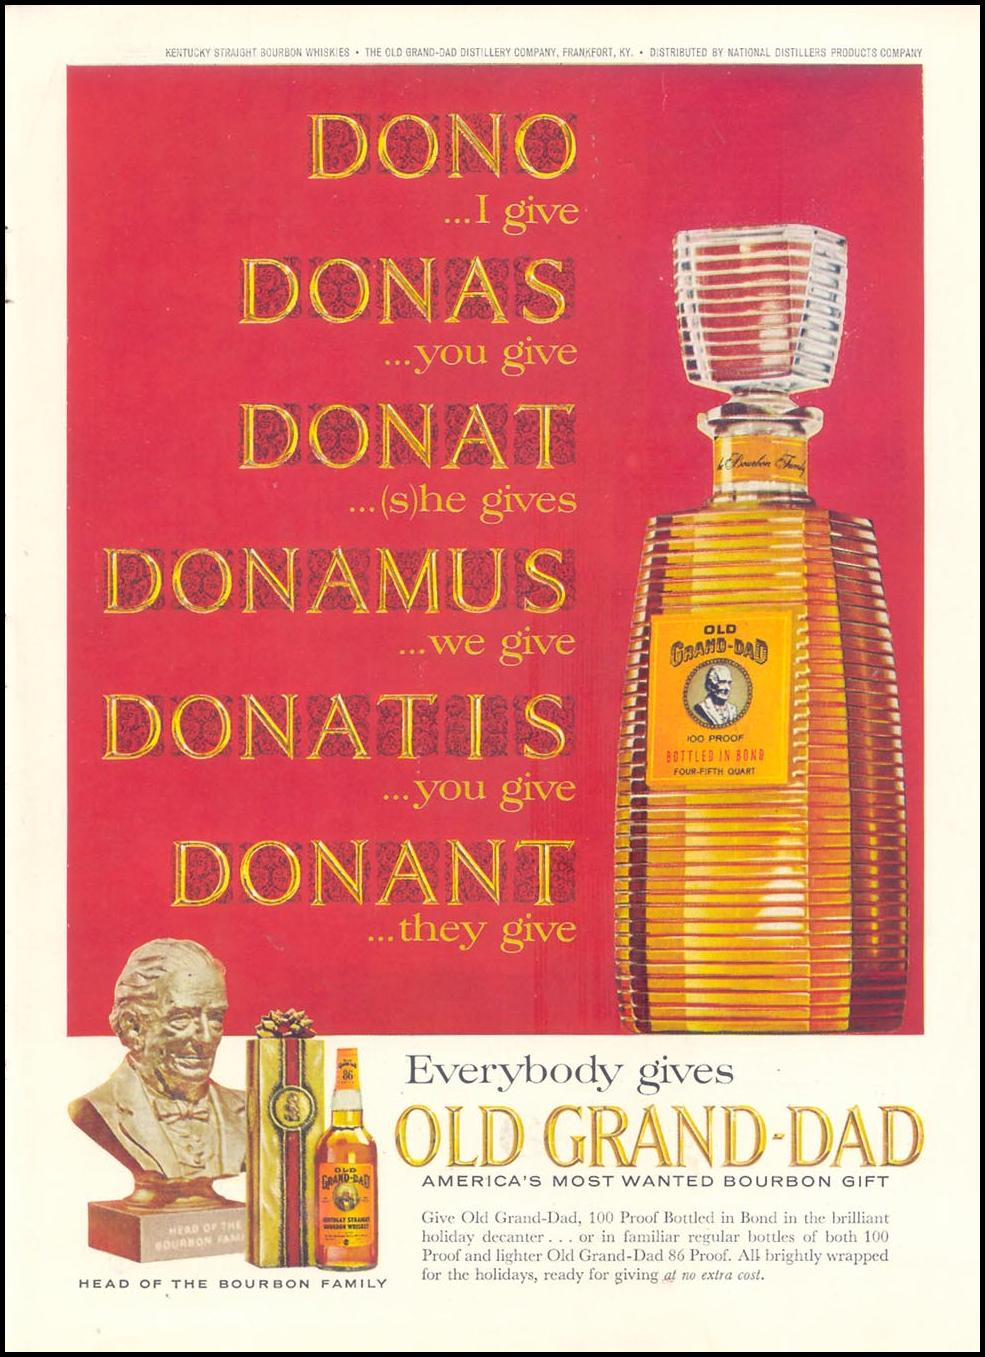 OLD GRAND-DAD BOURBON WHISKEY TIME 12/06/1963 INSIDE BACK